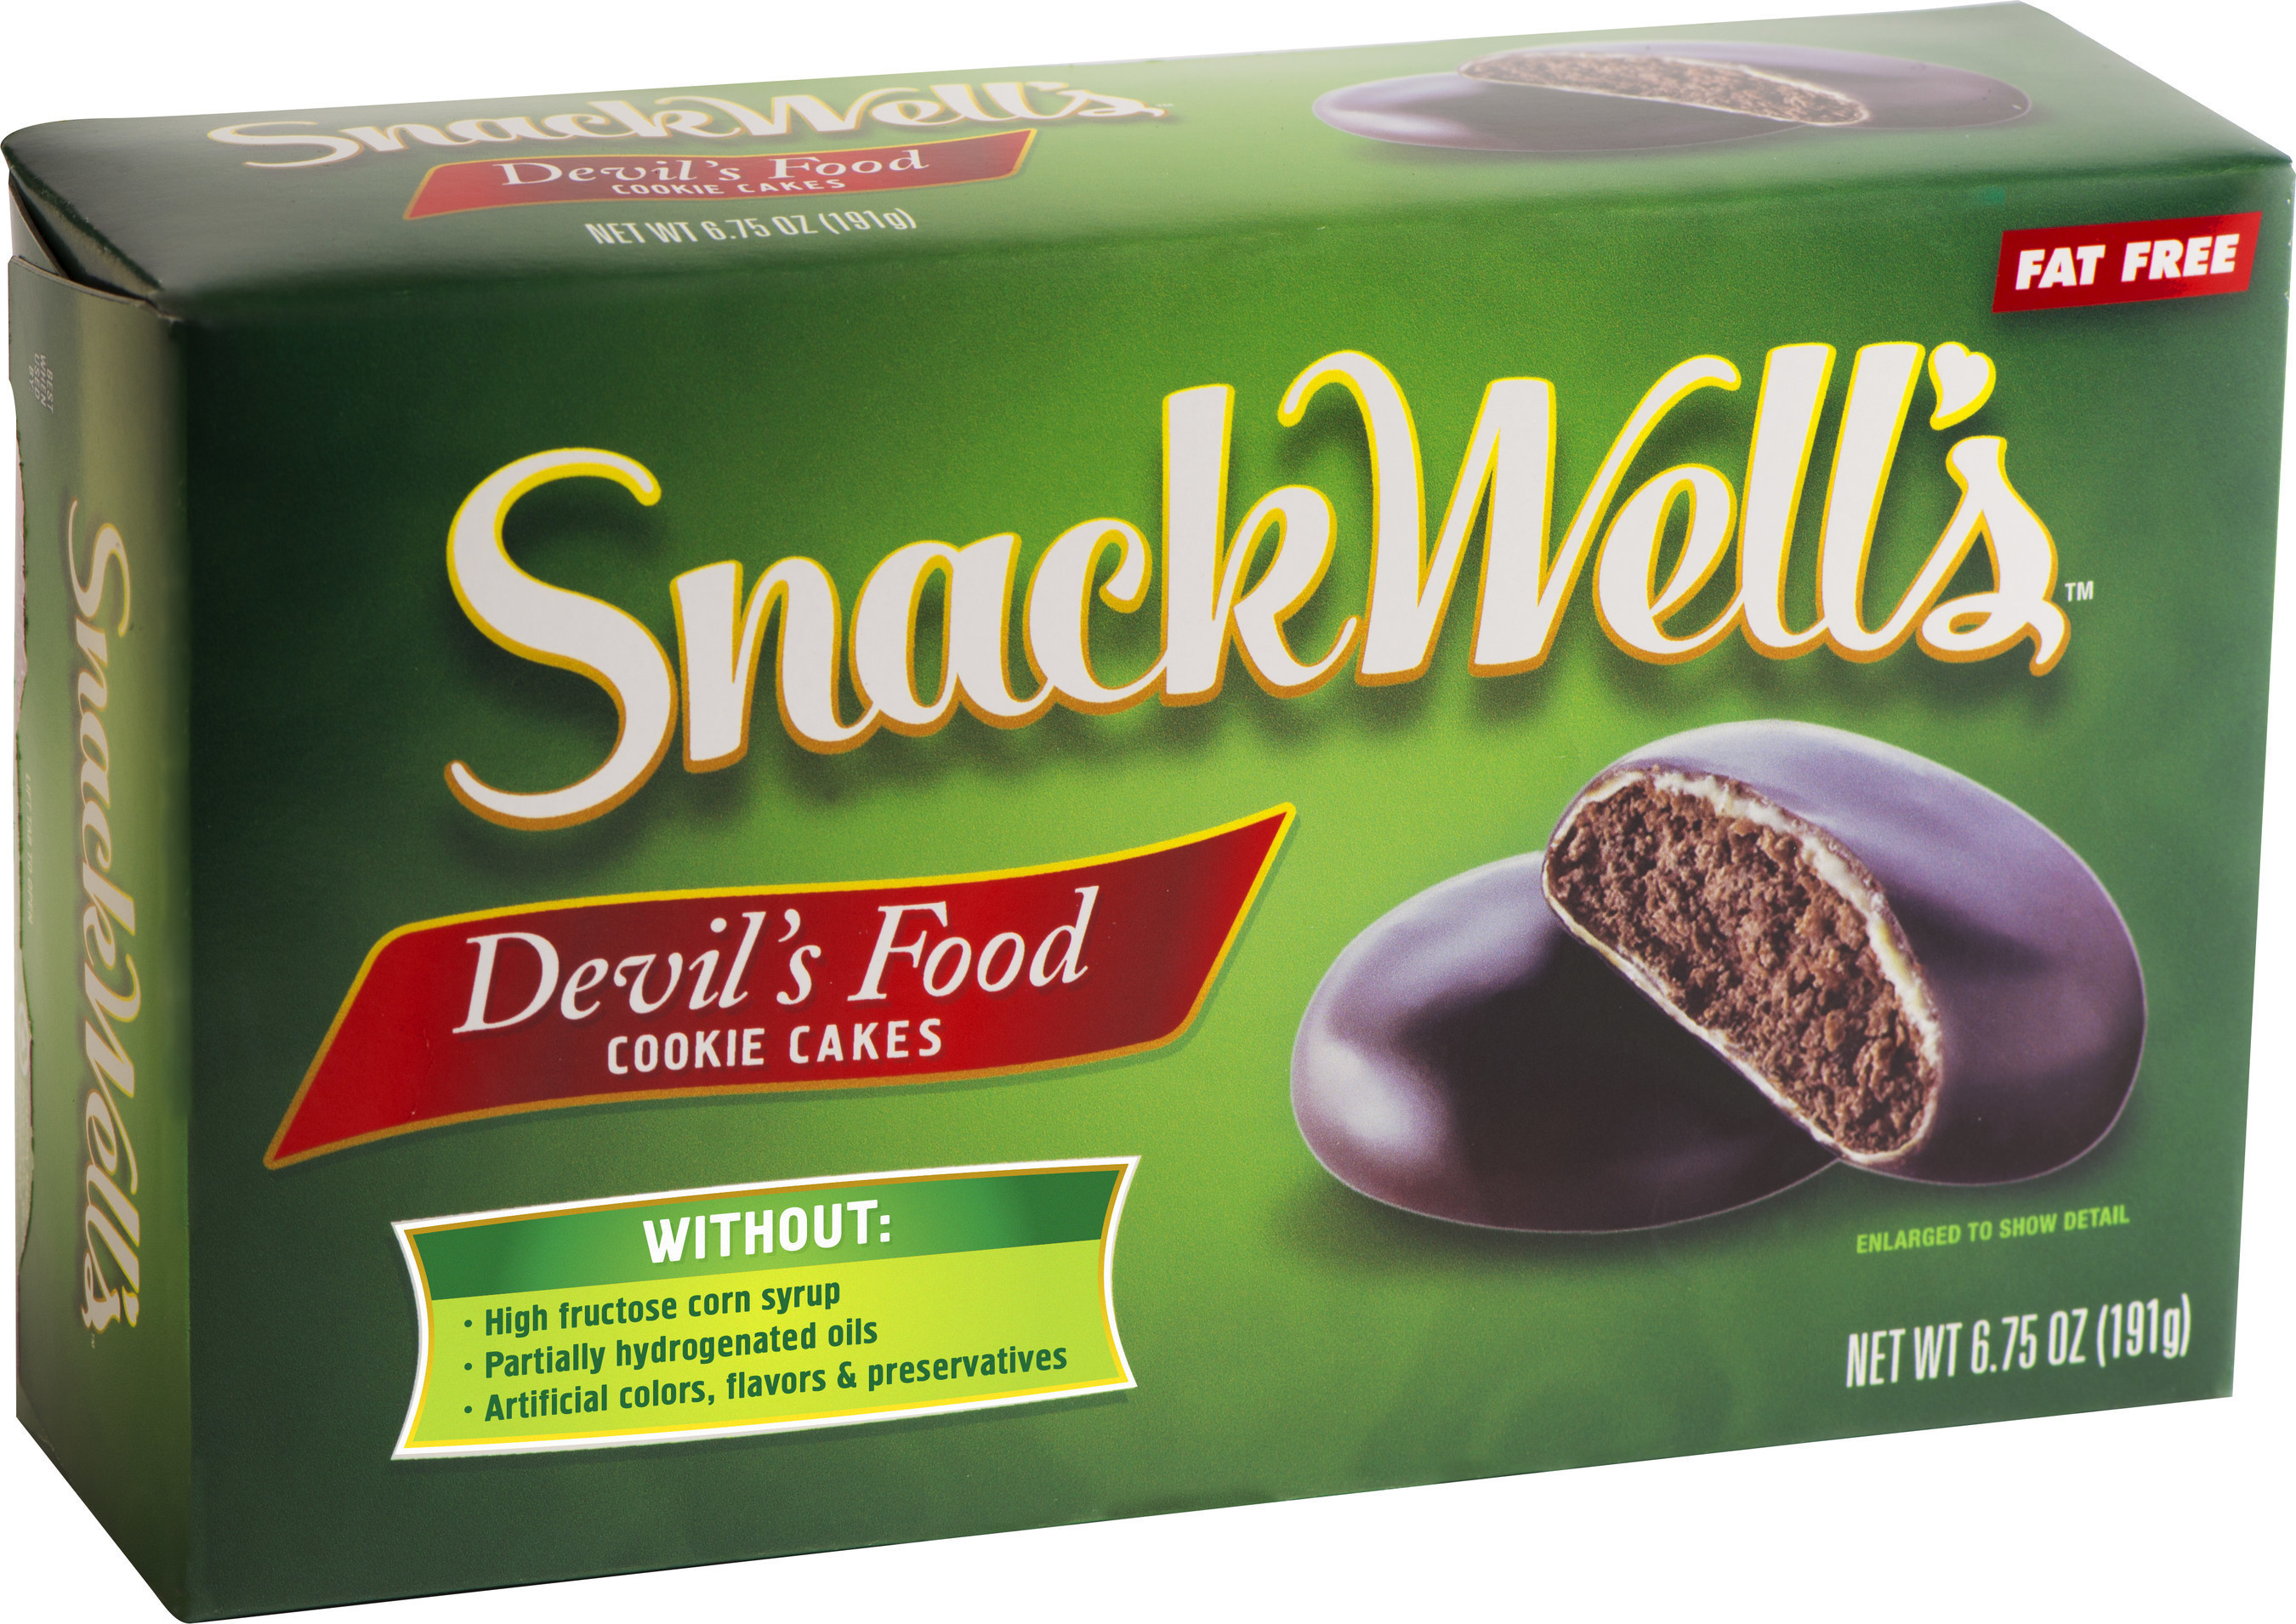 SnackWell's Commits to Removing Several Ingredients from its Products and Expands Product Lineup